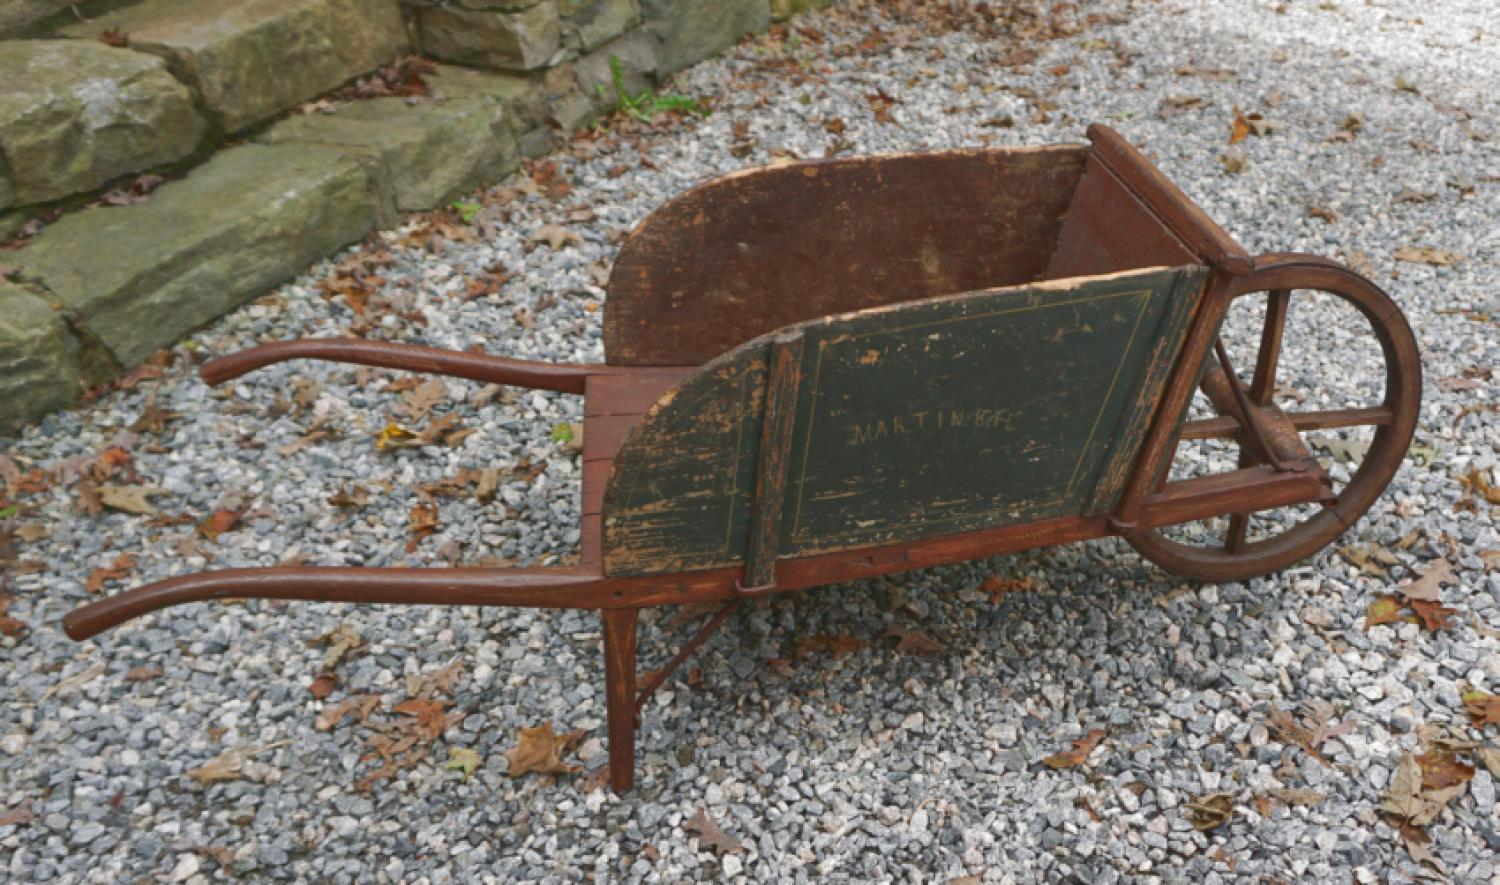 Antique wheelbarrow in original red and green paint